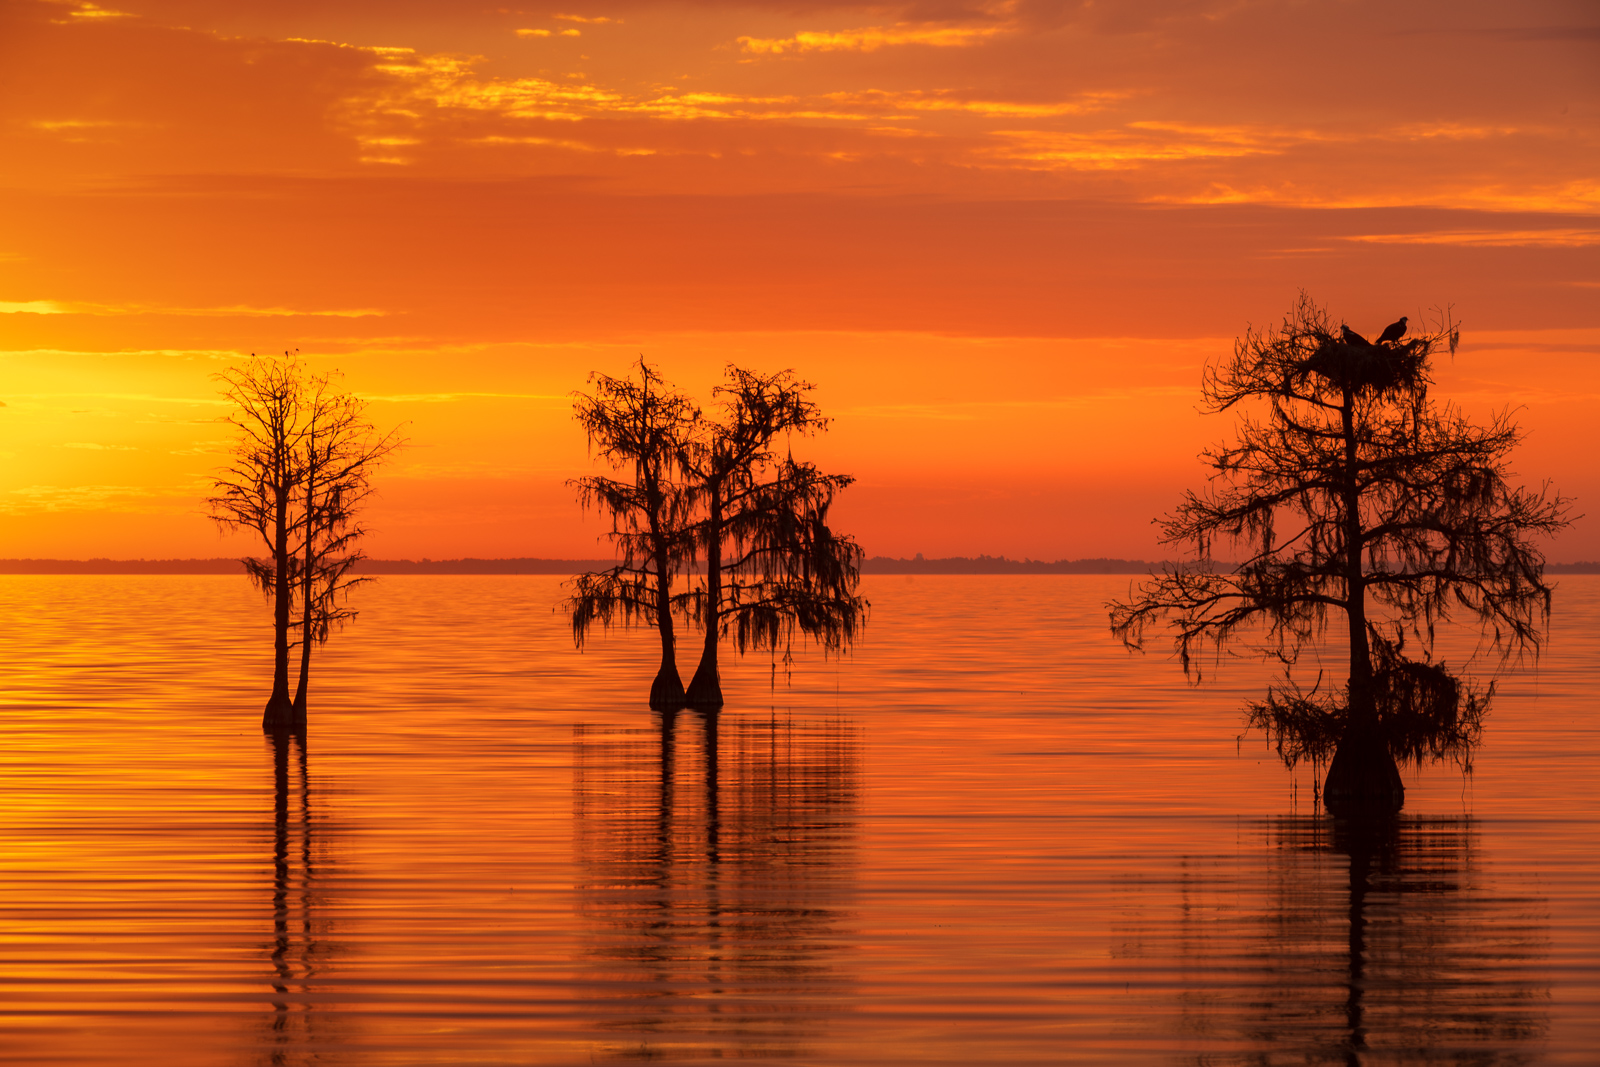 Bald Cypress on Lake Moultrie at sunrise.